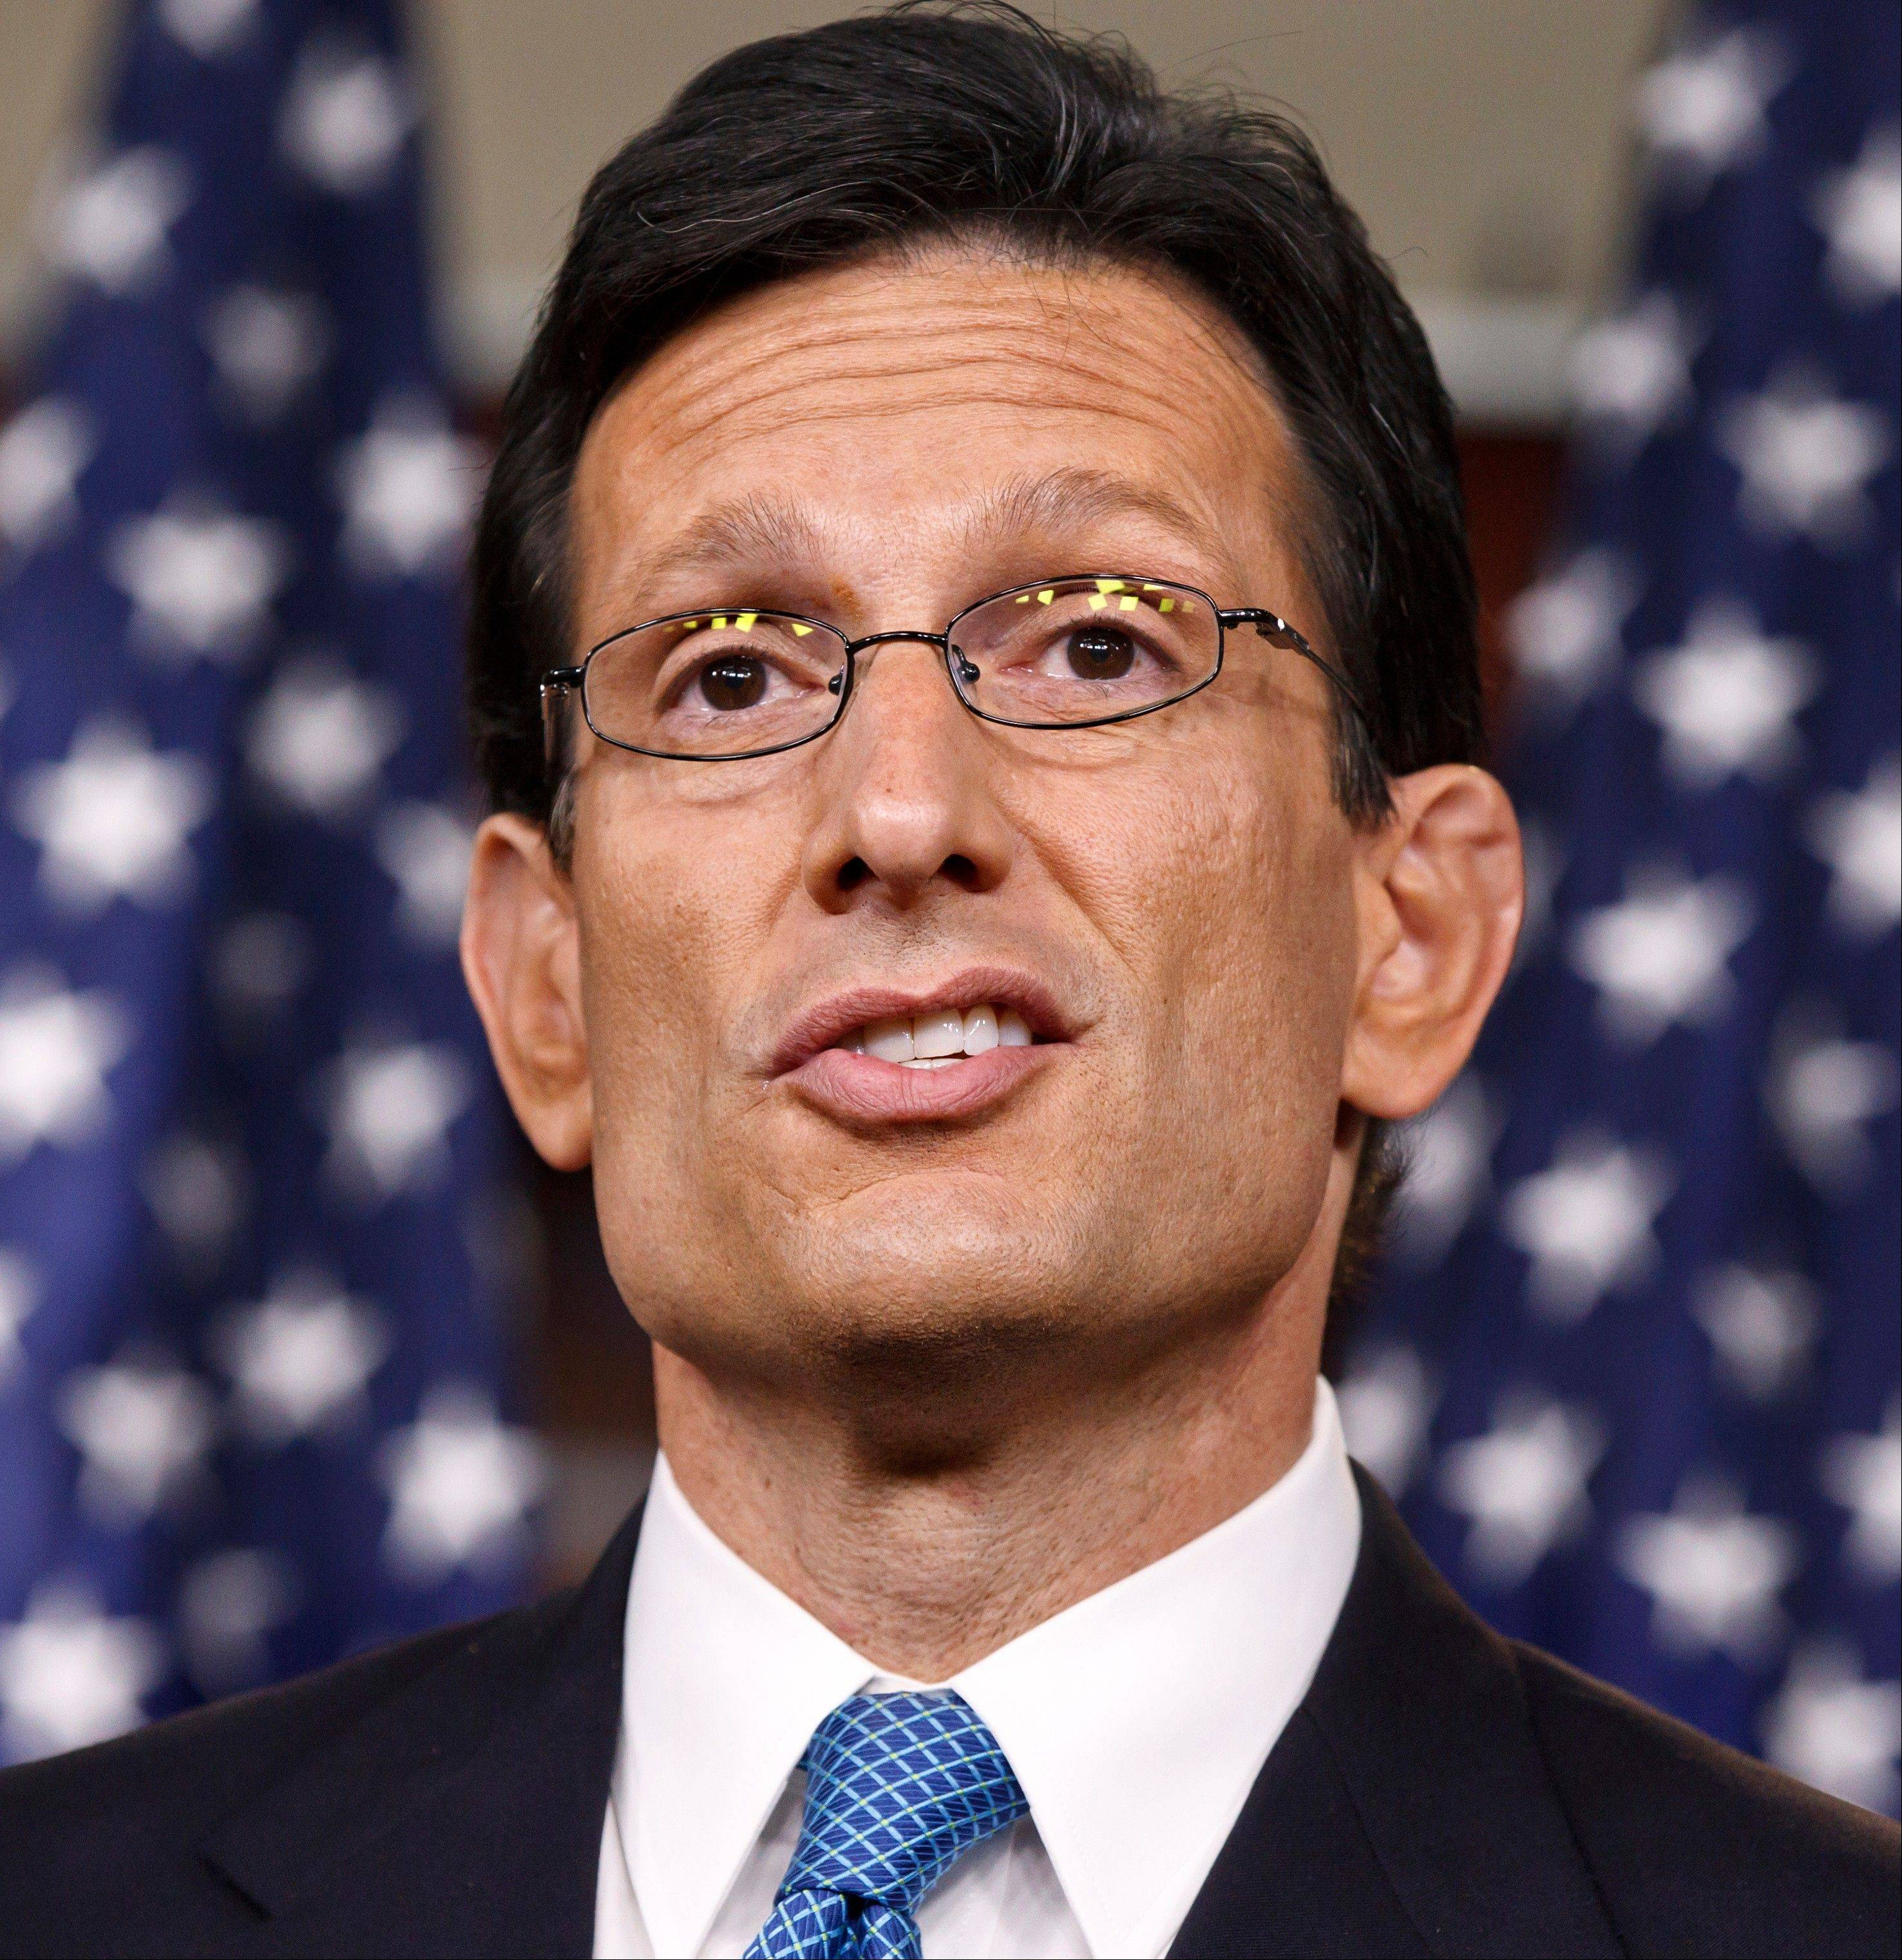 House Majority Leader Eric Cantor first heard about CIA Director David Petraeus' extramarital affair Saturday, Oct. 27, from an FBI source he didn't know, according to an aide in Cantor's office.